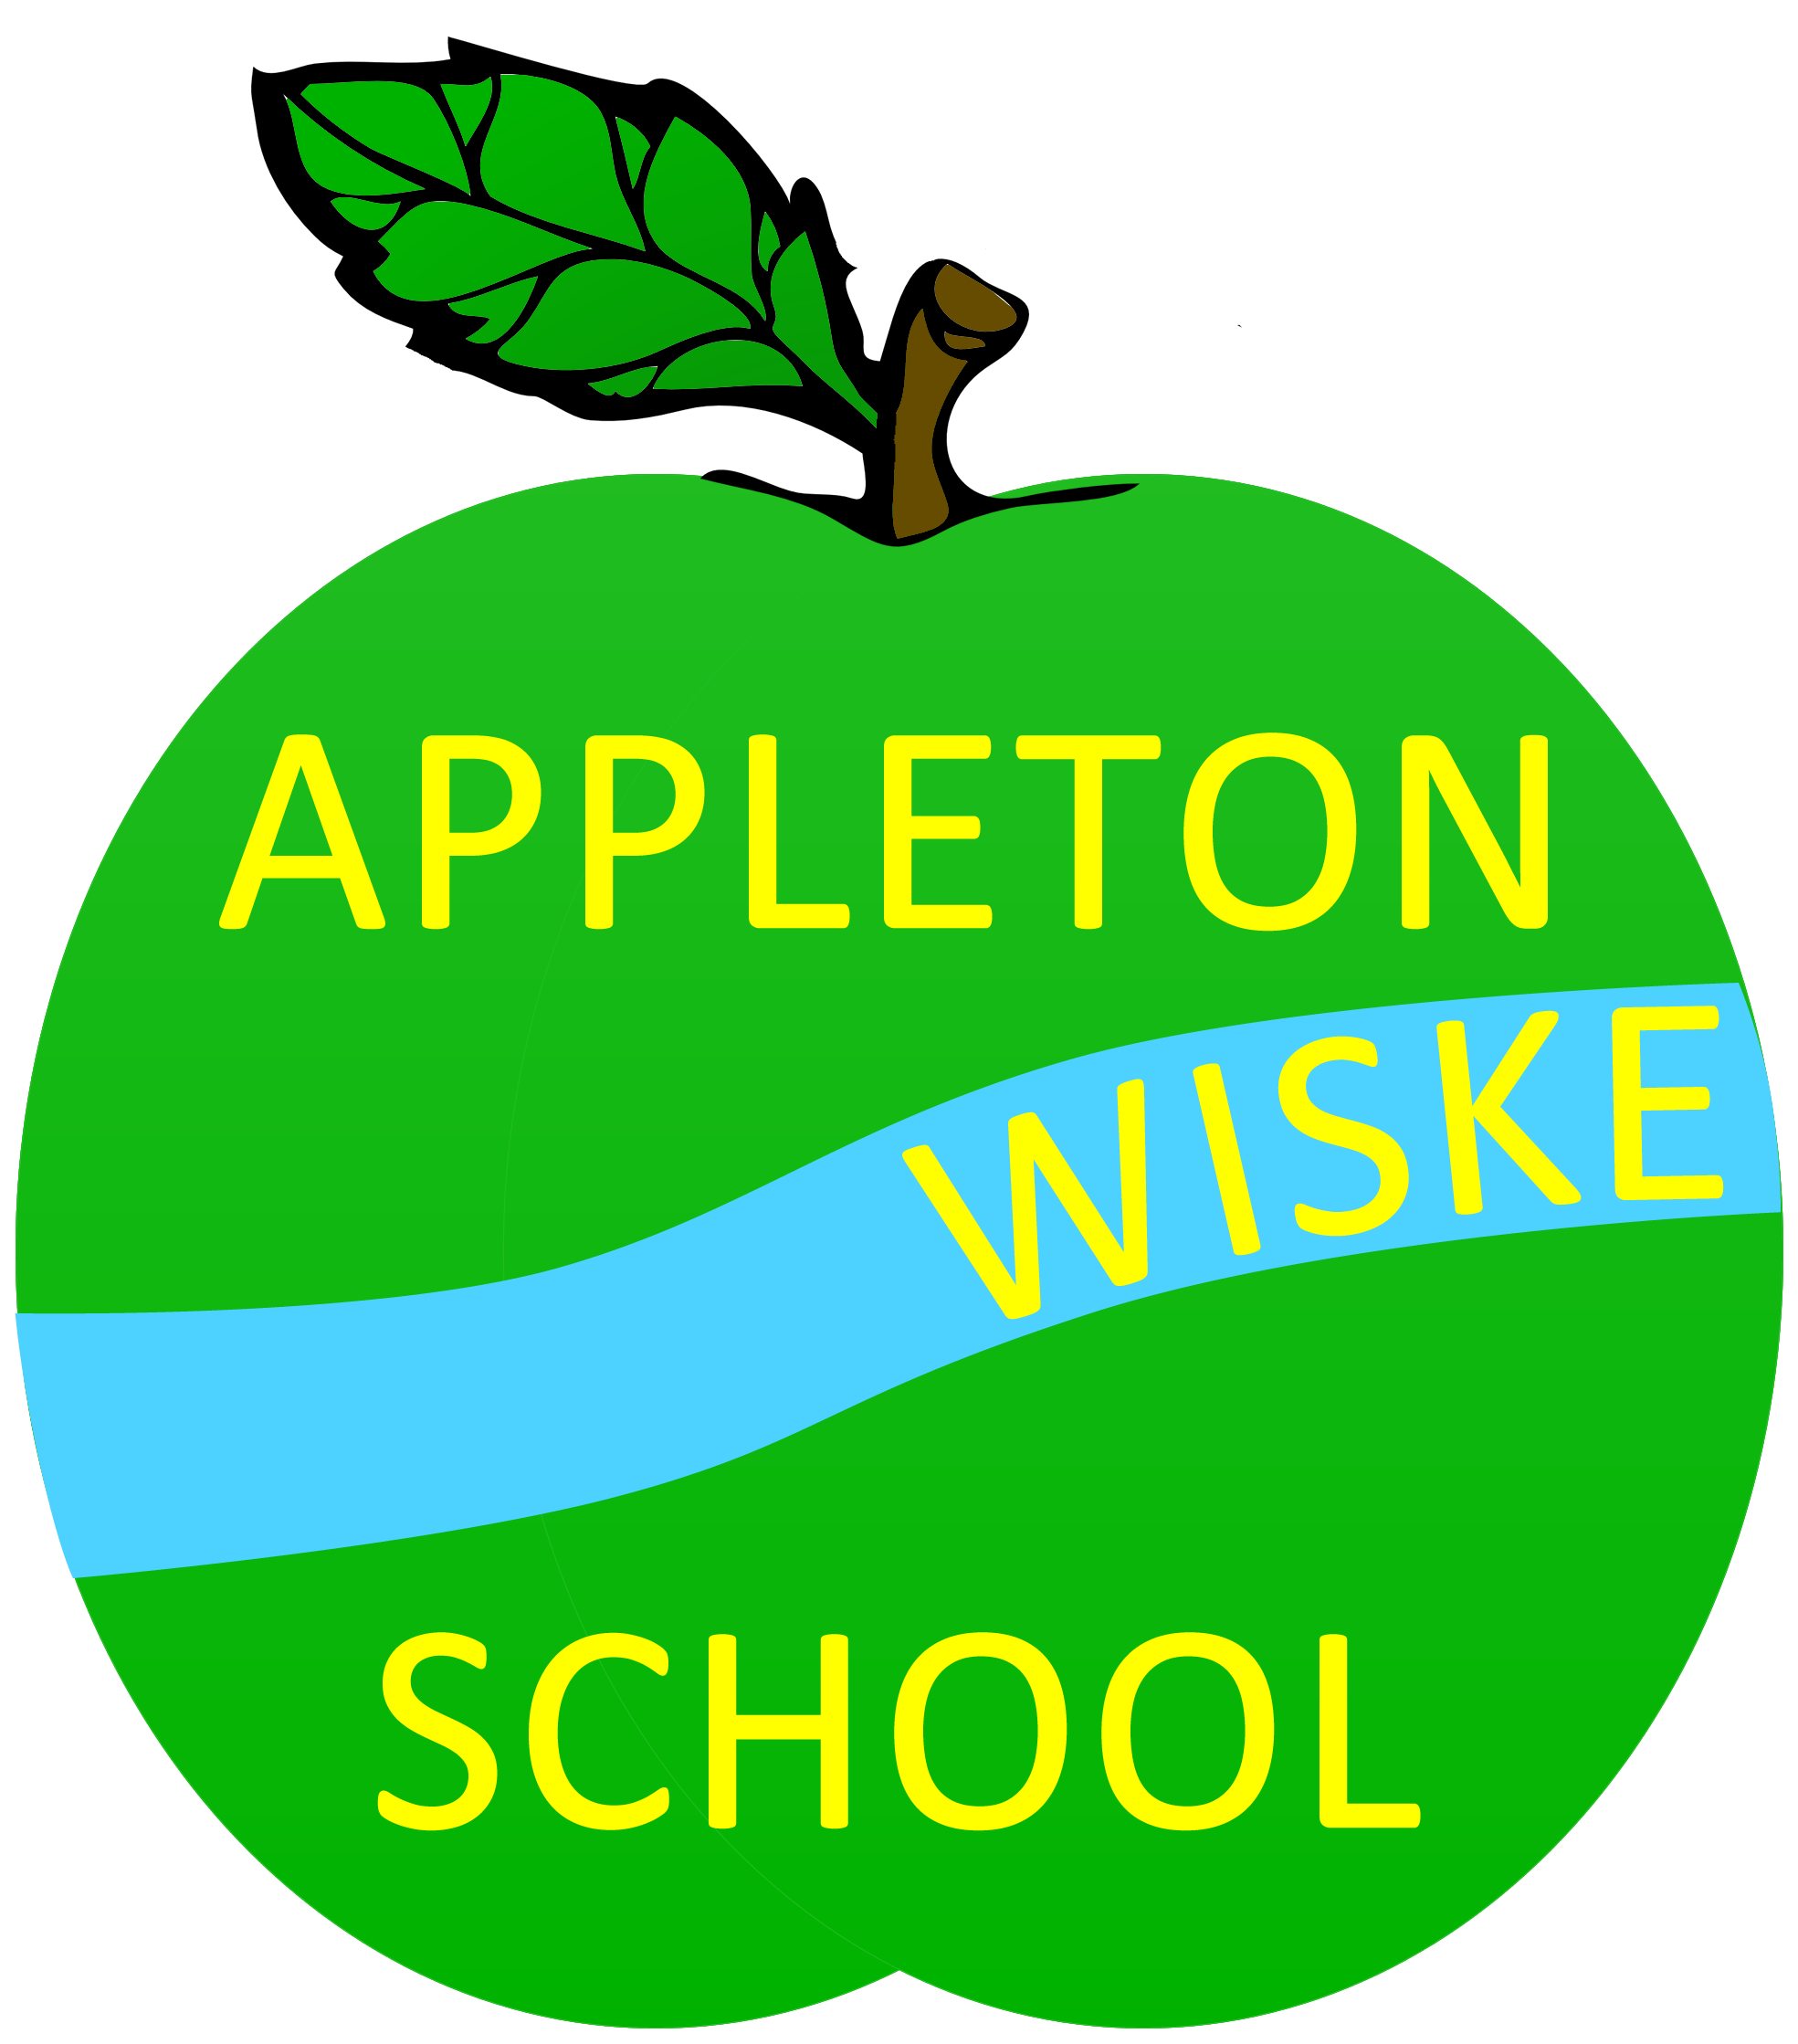 Link to Appleton Wiske website